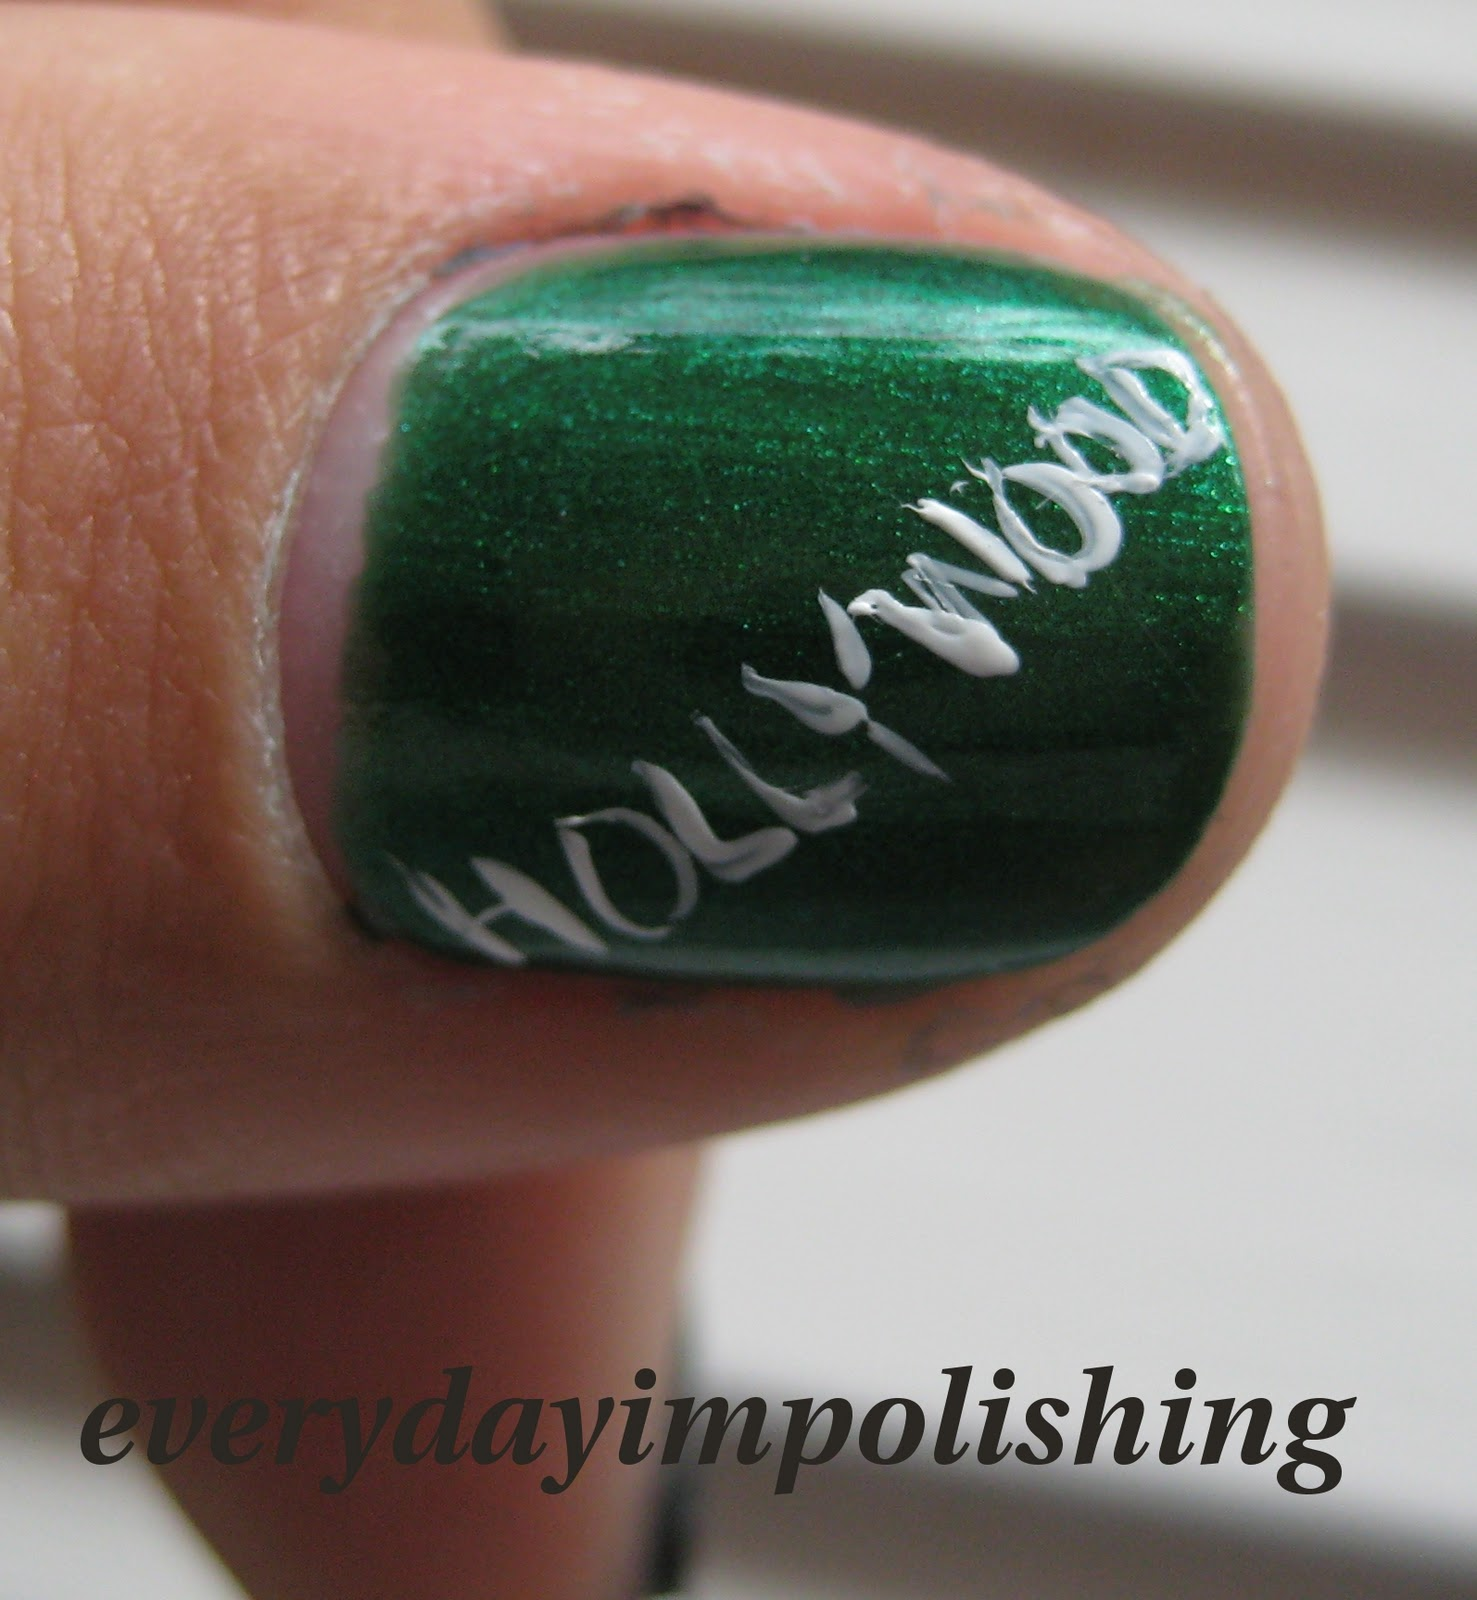 d0ef8f138684 Nails on Nails on Nails  Day 22  Nails Inspired by A SONG